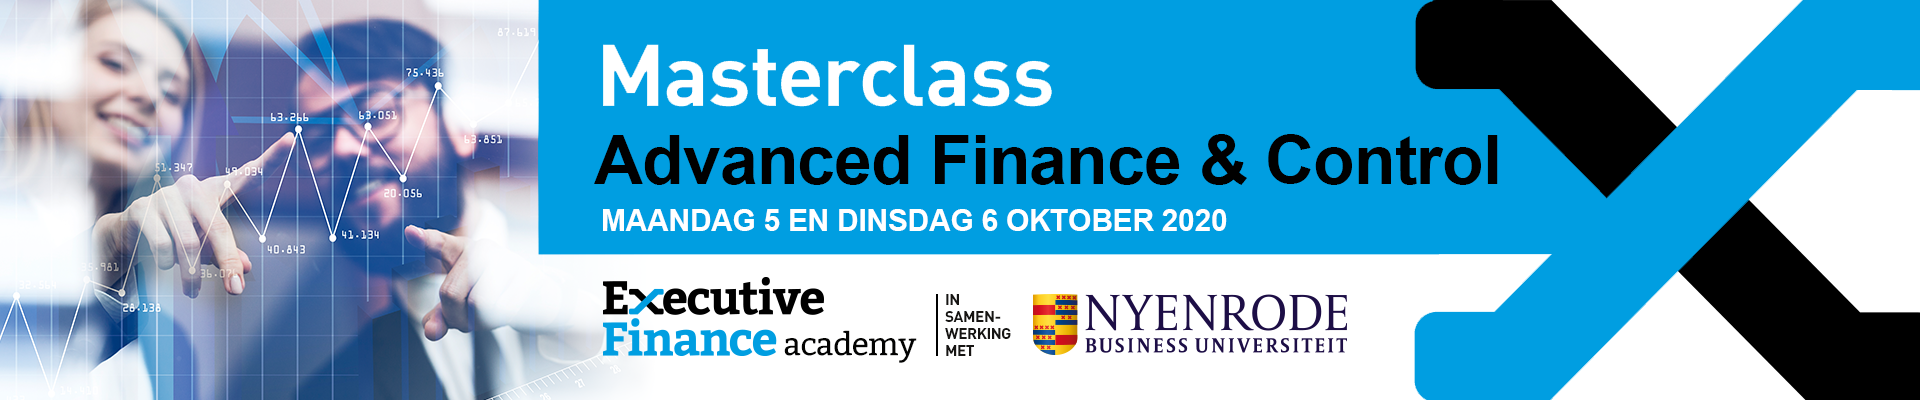 Masterclass Advanced Finance & Control najaar 2020